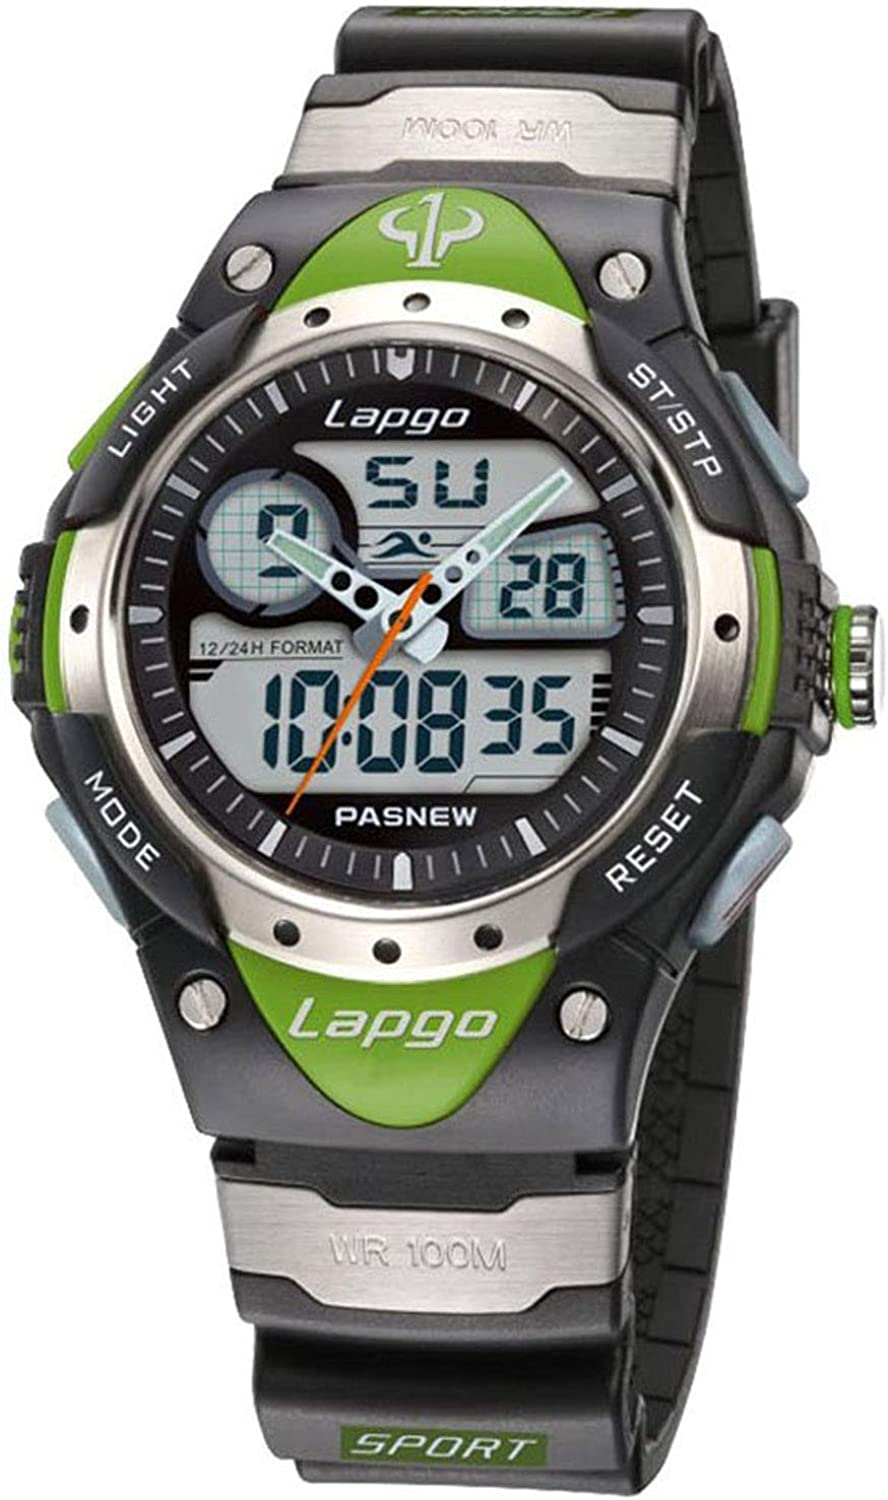 PASNEW Boys Watch Analog Digital Dual Time Watch Waterproof Sports Casual Boys Wrist Watches 388ad Green: Watches